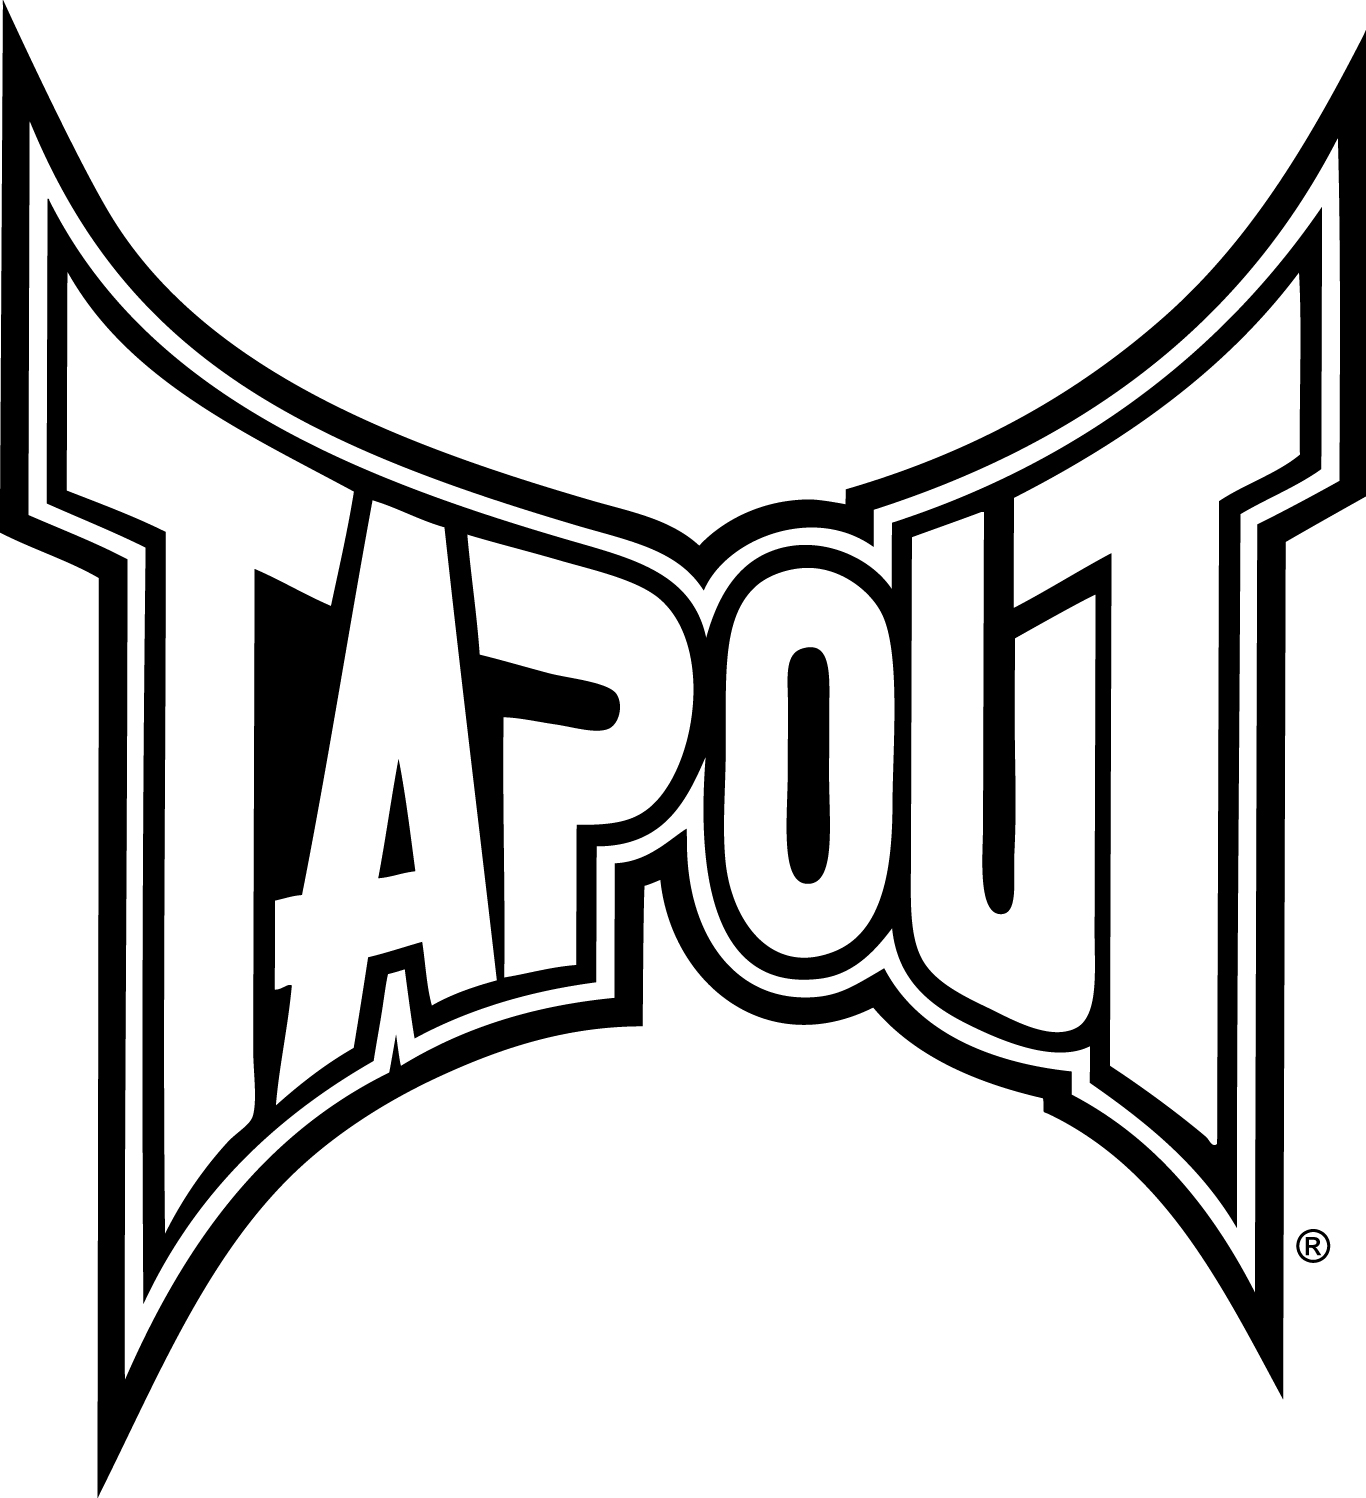 tapout logo red mma - photo #14